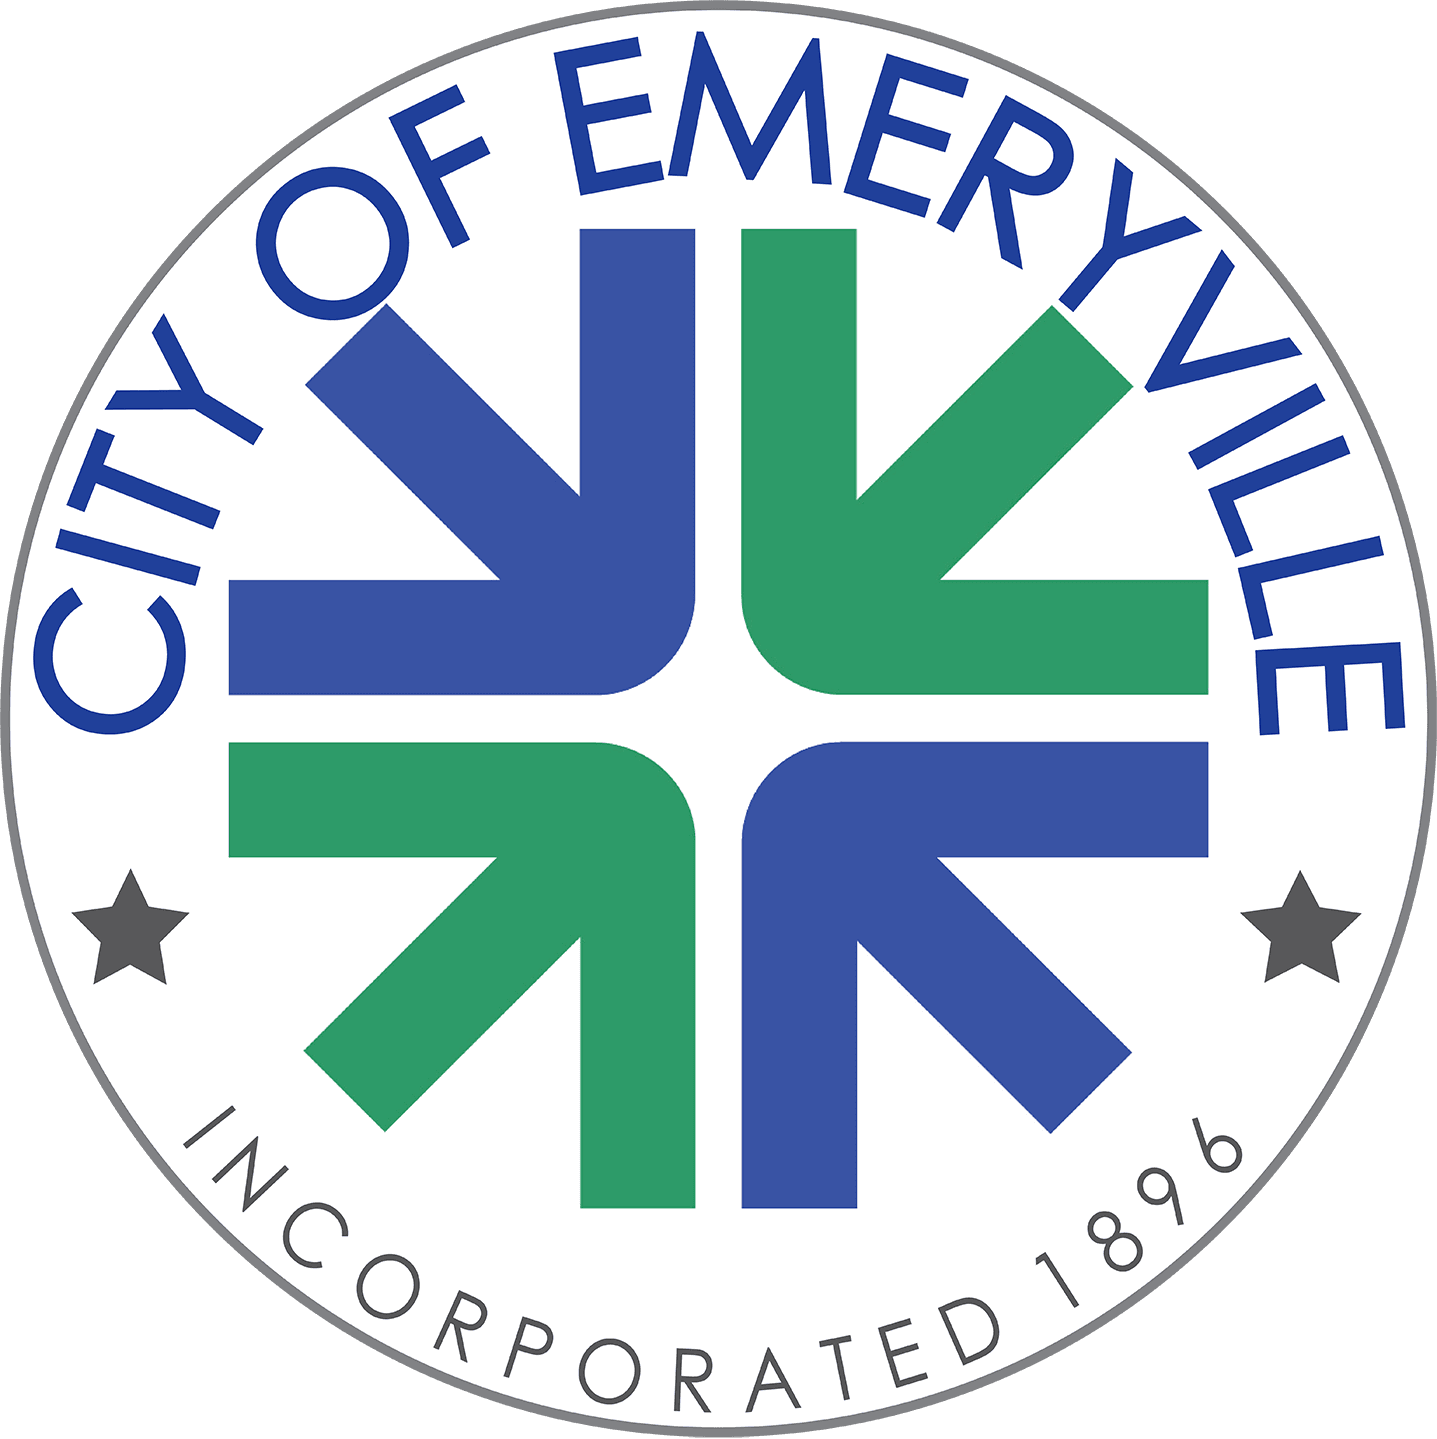 City of Emeryville